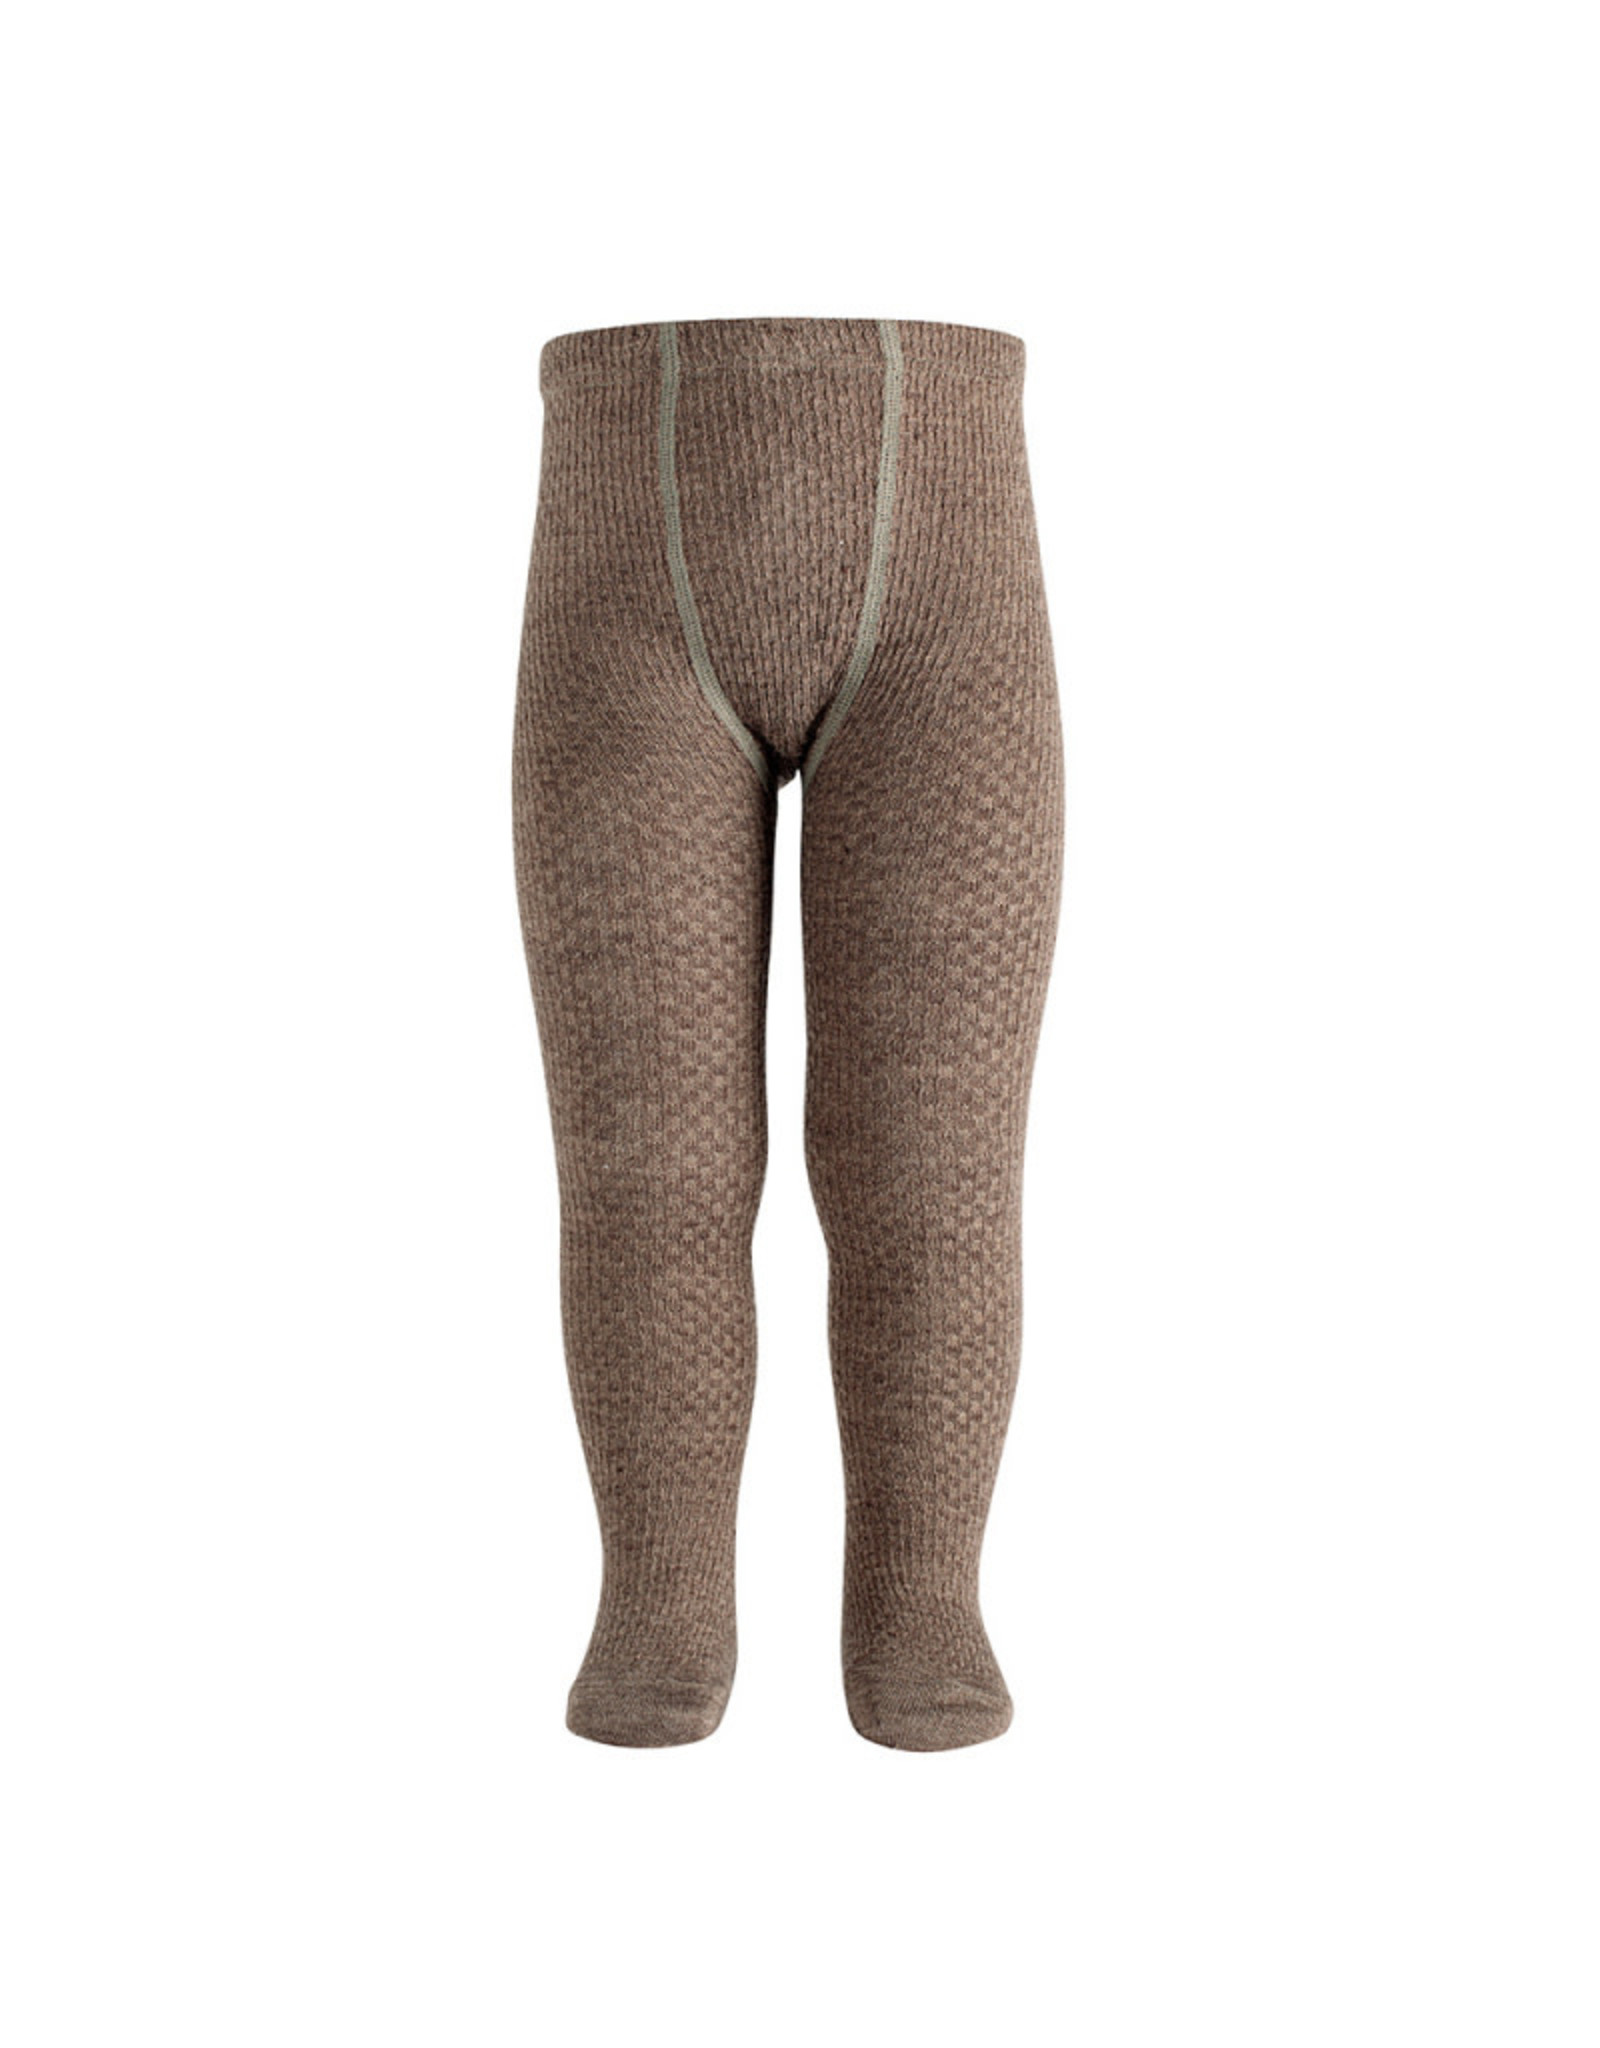 CONDOR Trunk Wool Patterned Tights